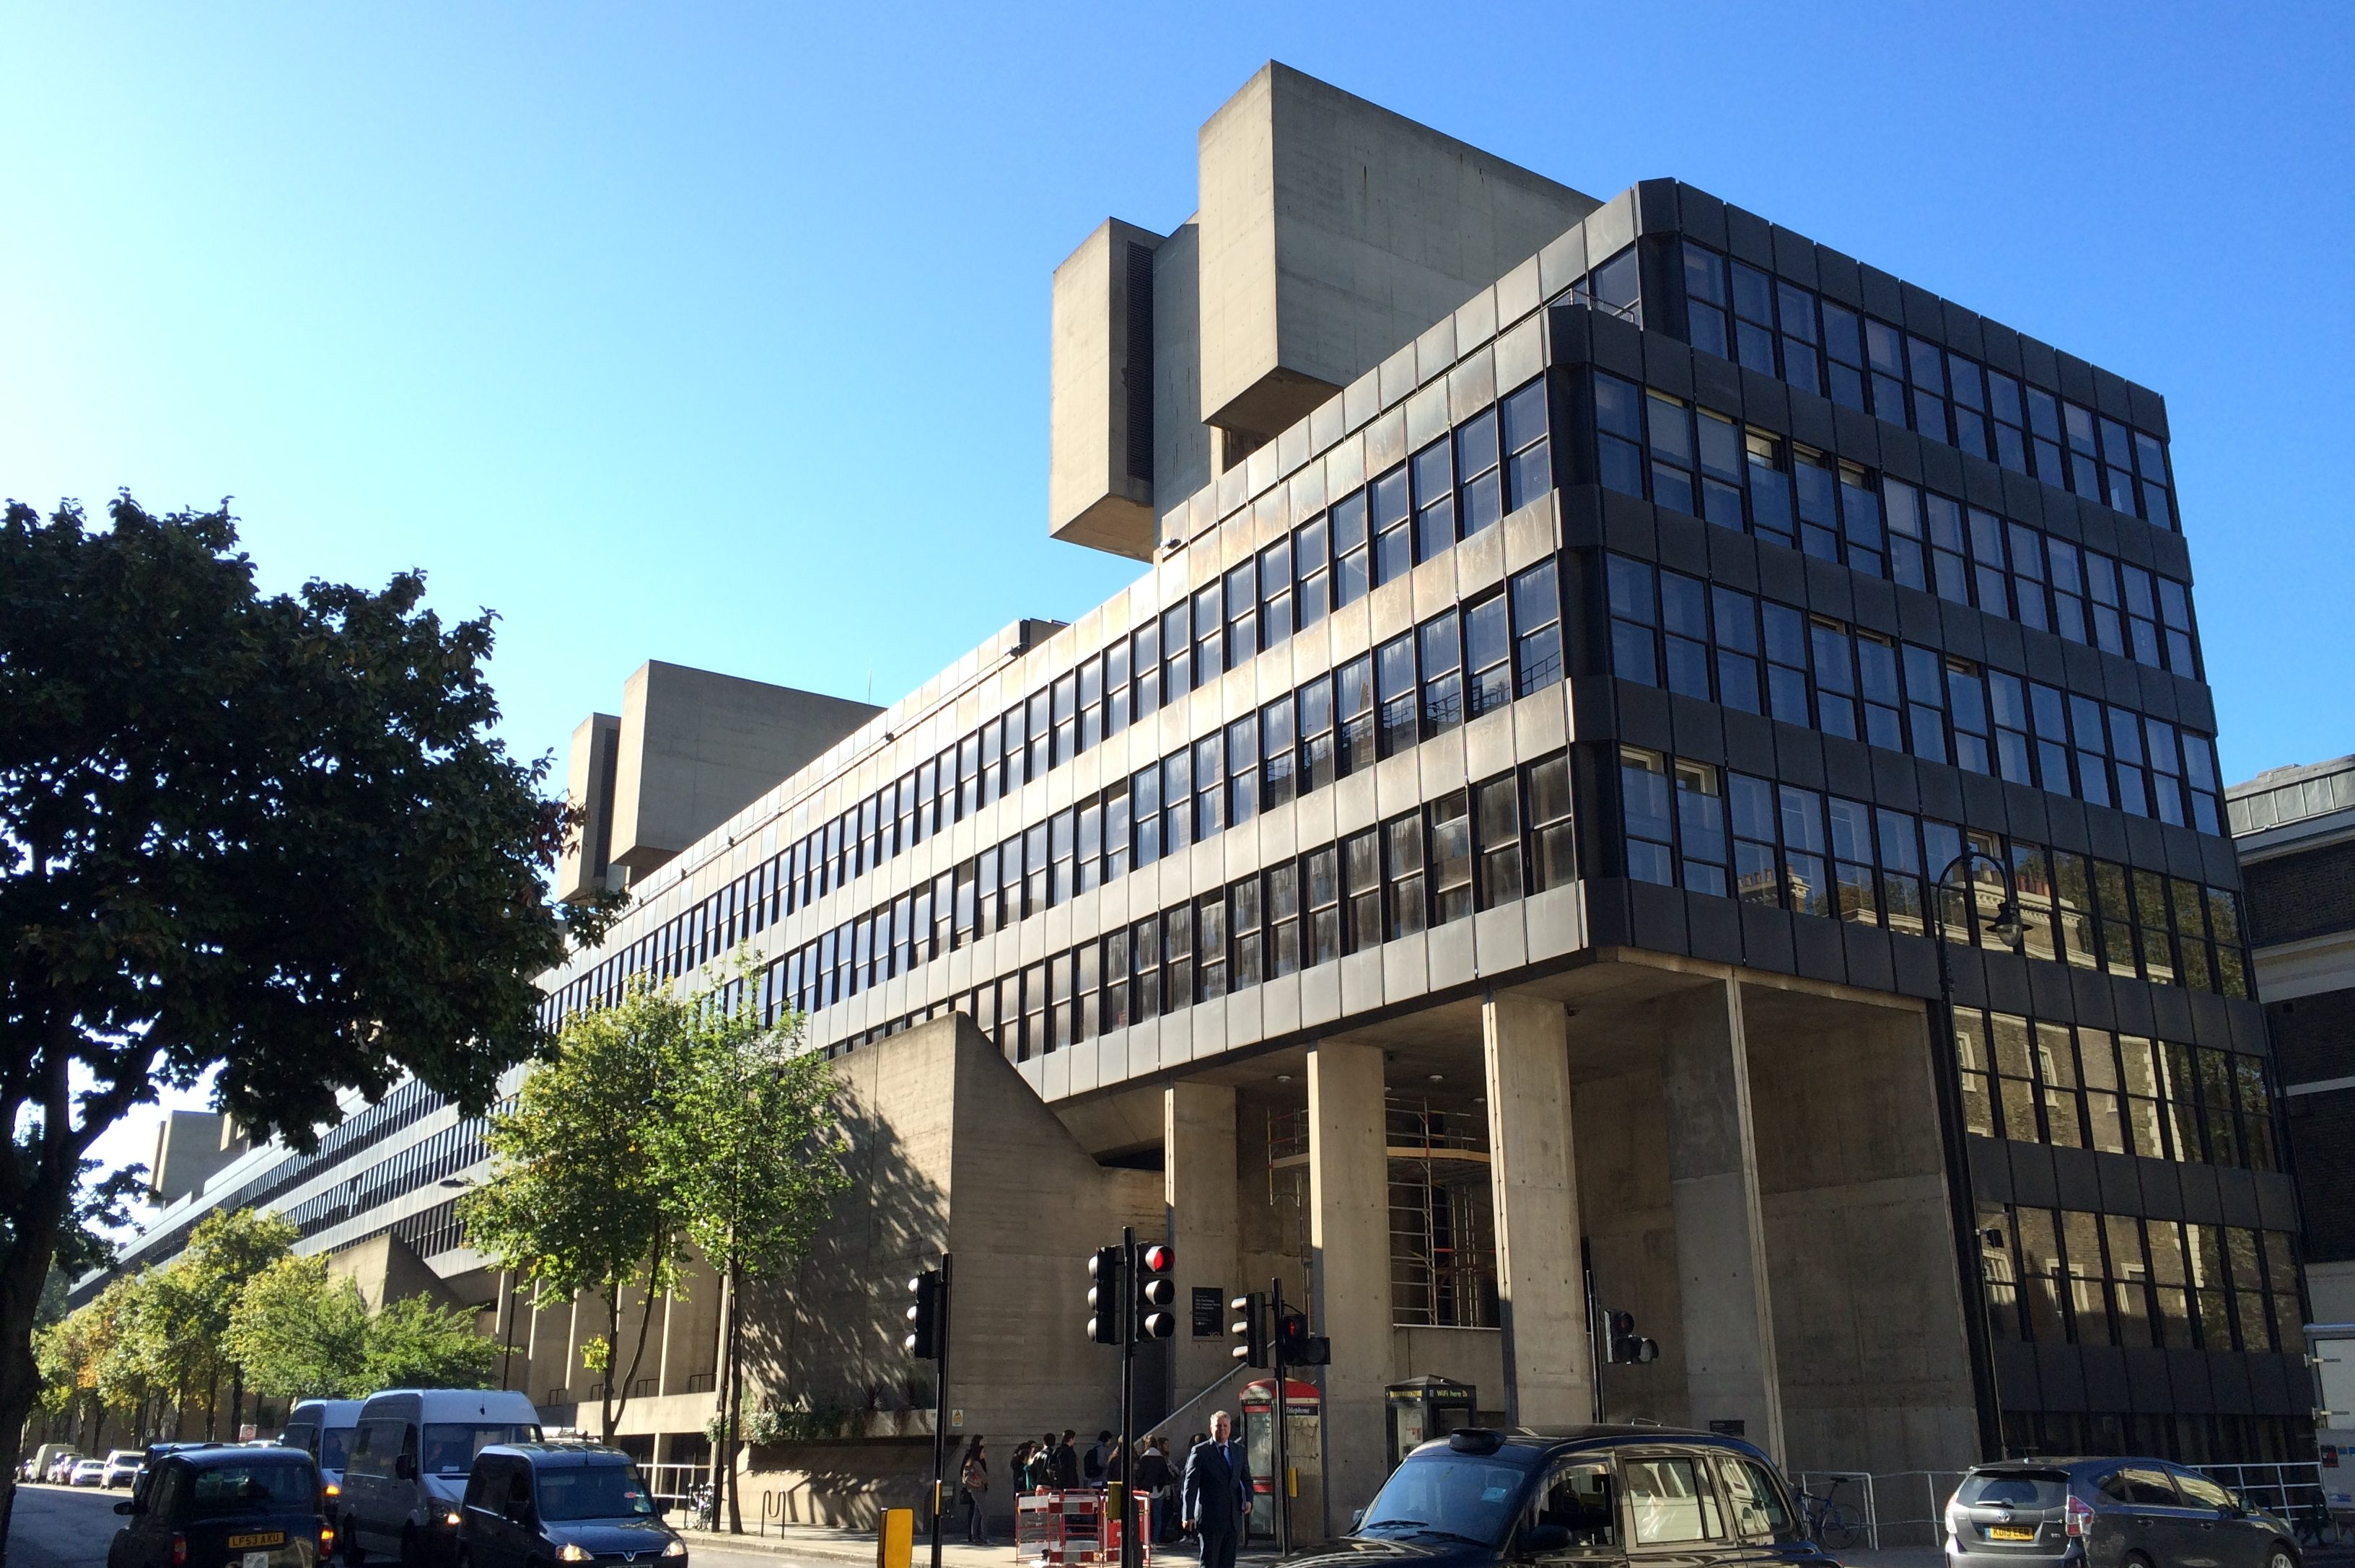 Institute of Education, University College London